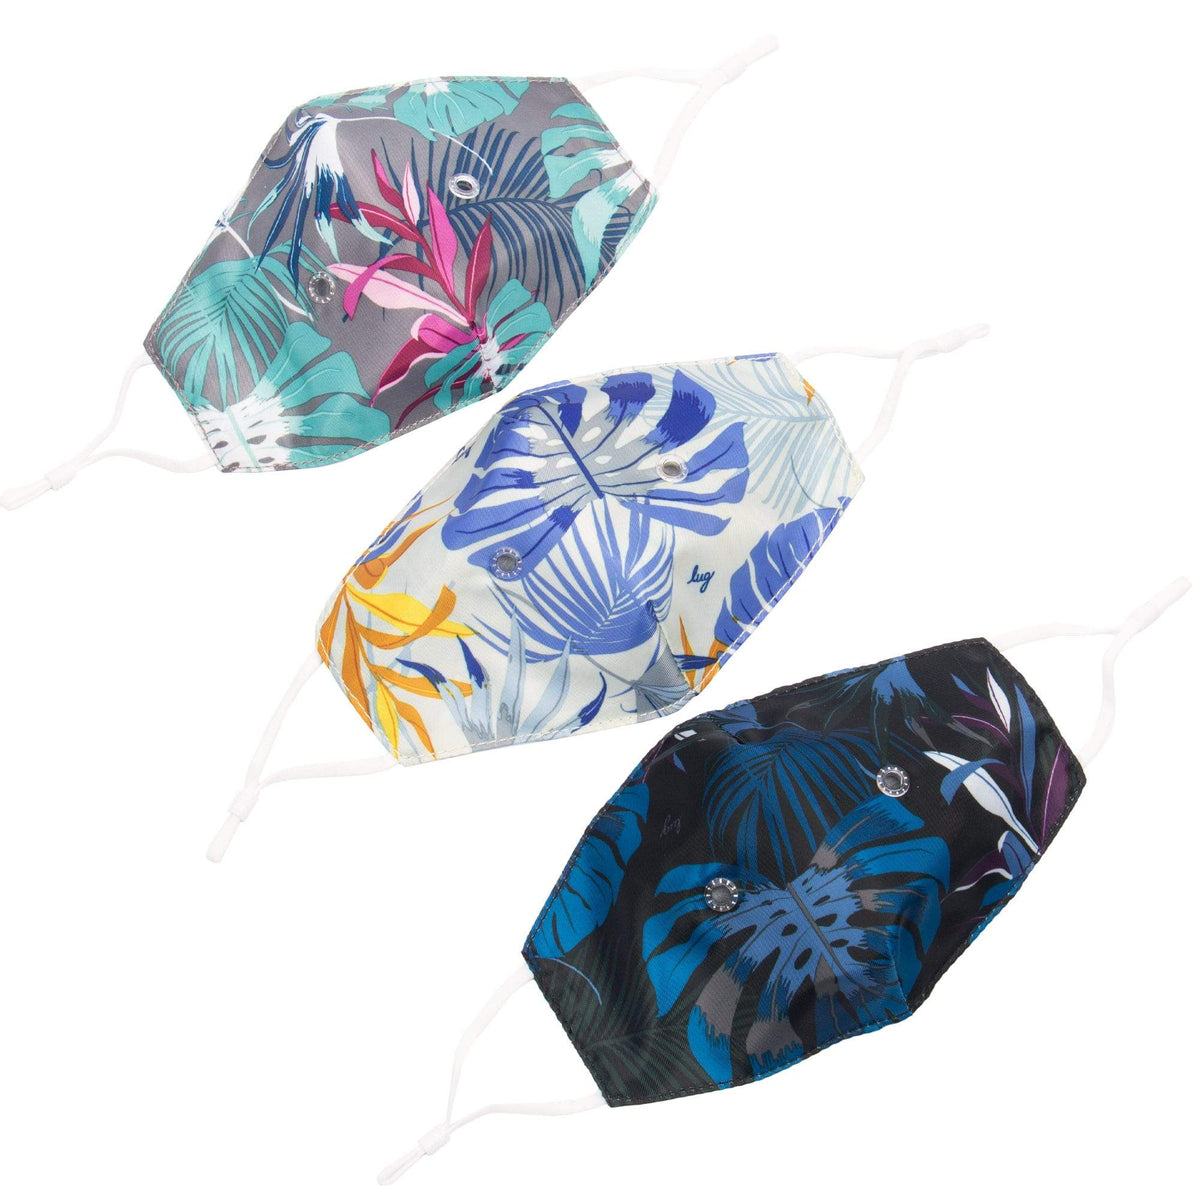 Beaker 2 Face Mask 3PK - Assorted Set